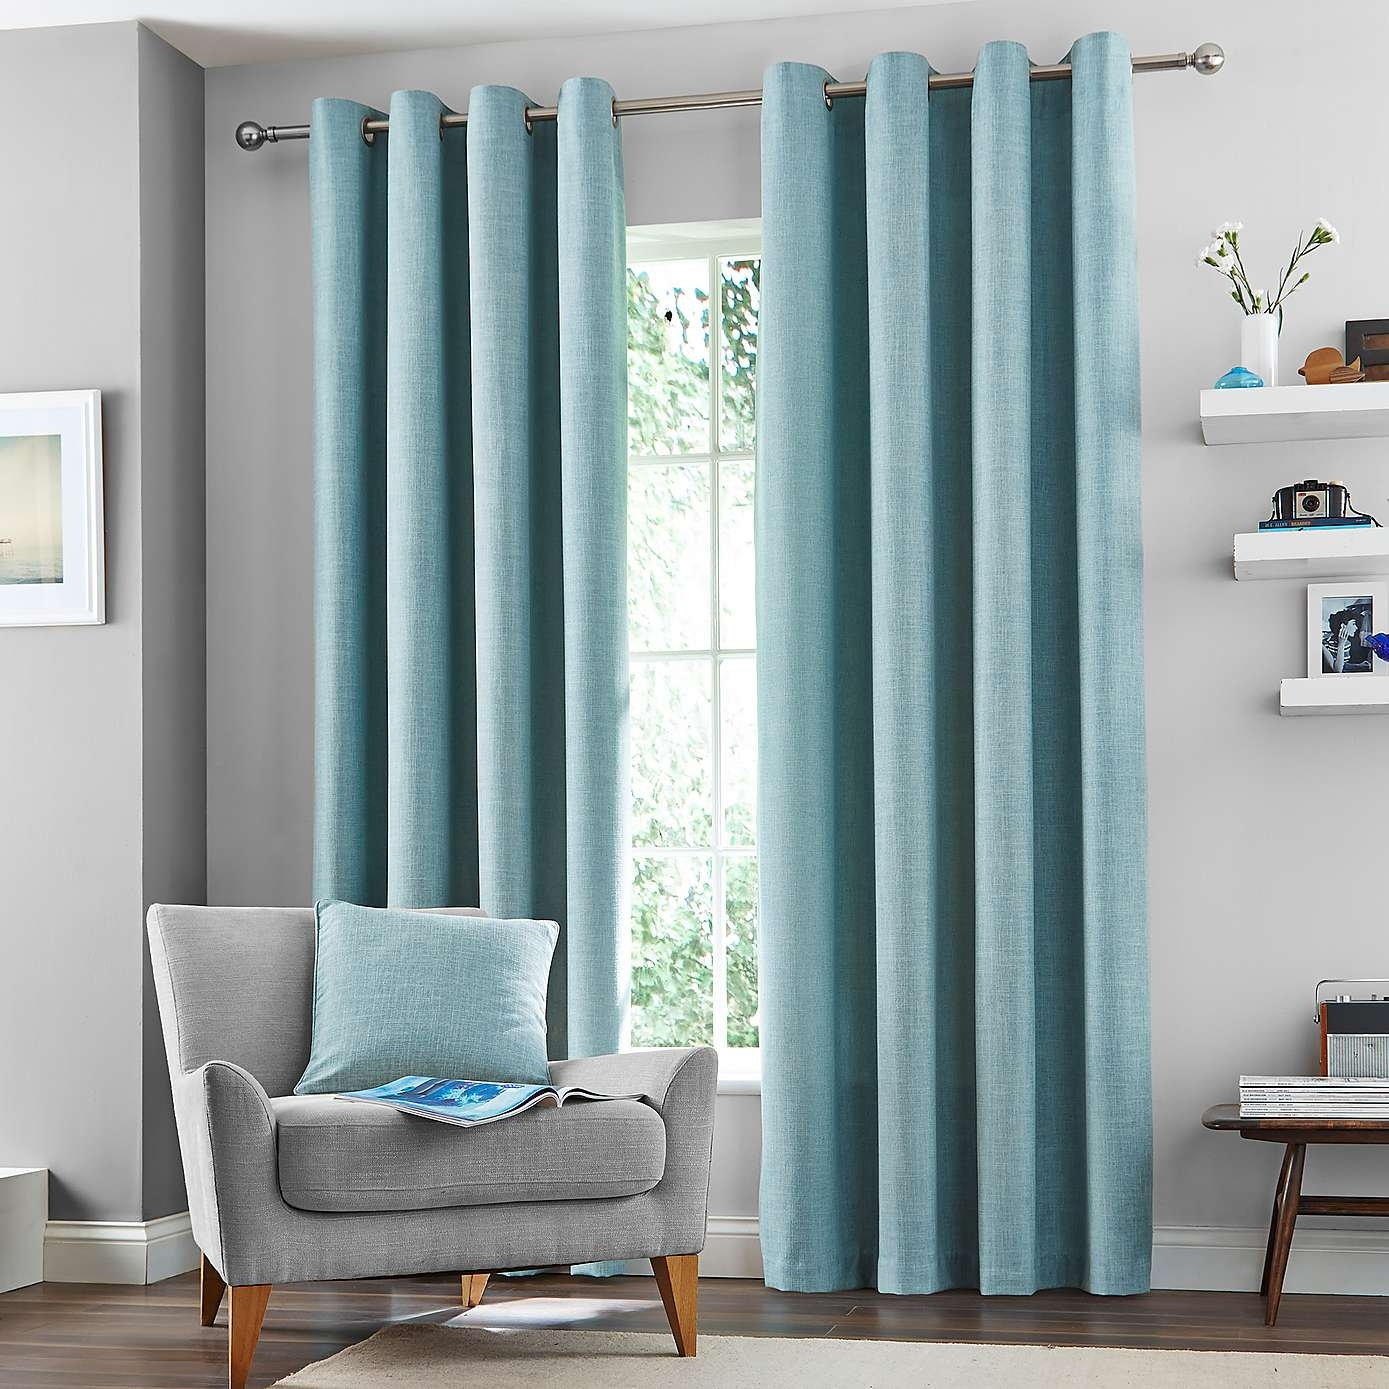 Duck Egg Vermont Lined Eyelet Curtains Dunelm Curtain Ideas In Duck Egg Blue Blackout Curtains (Image 9 of 15)